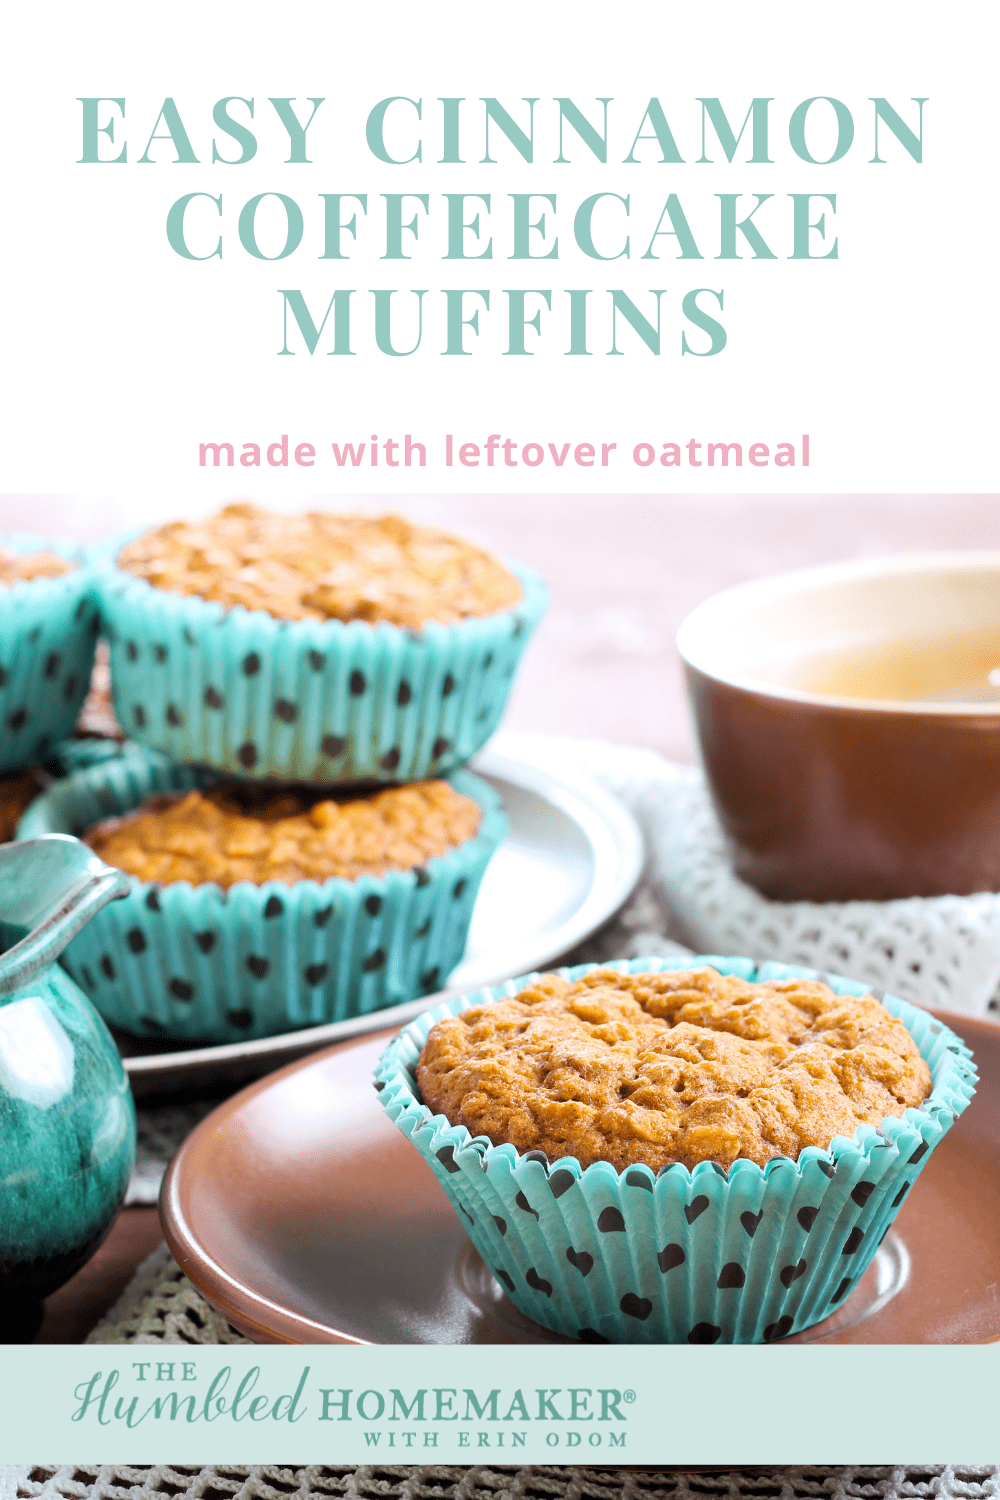 Enjoy a delicious and frugal coffeecake muffin made with a hint of cinnamon. It's a great way to use up leftover oatmeal. Great for breakfast on the go!